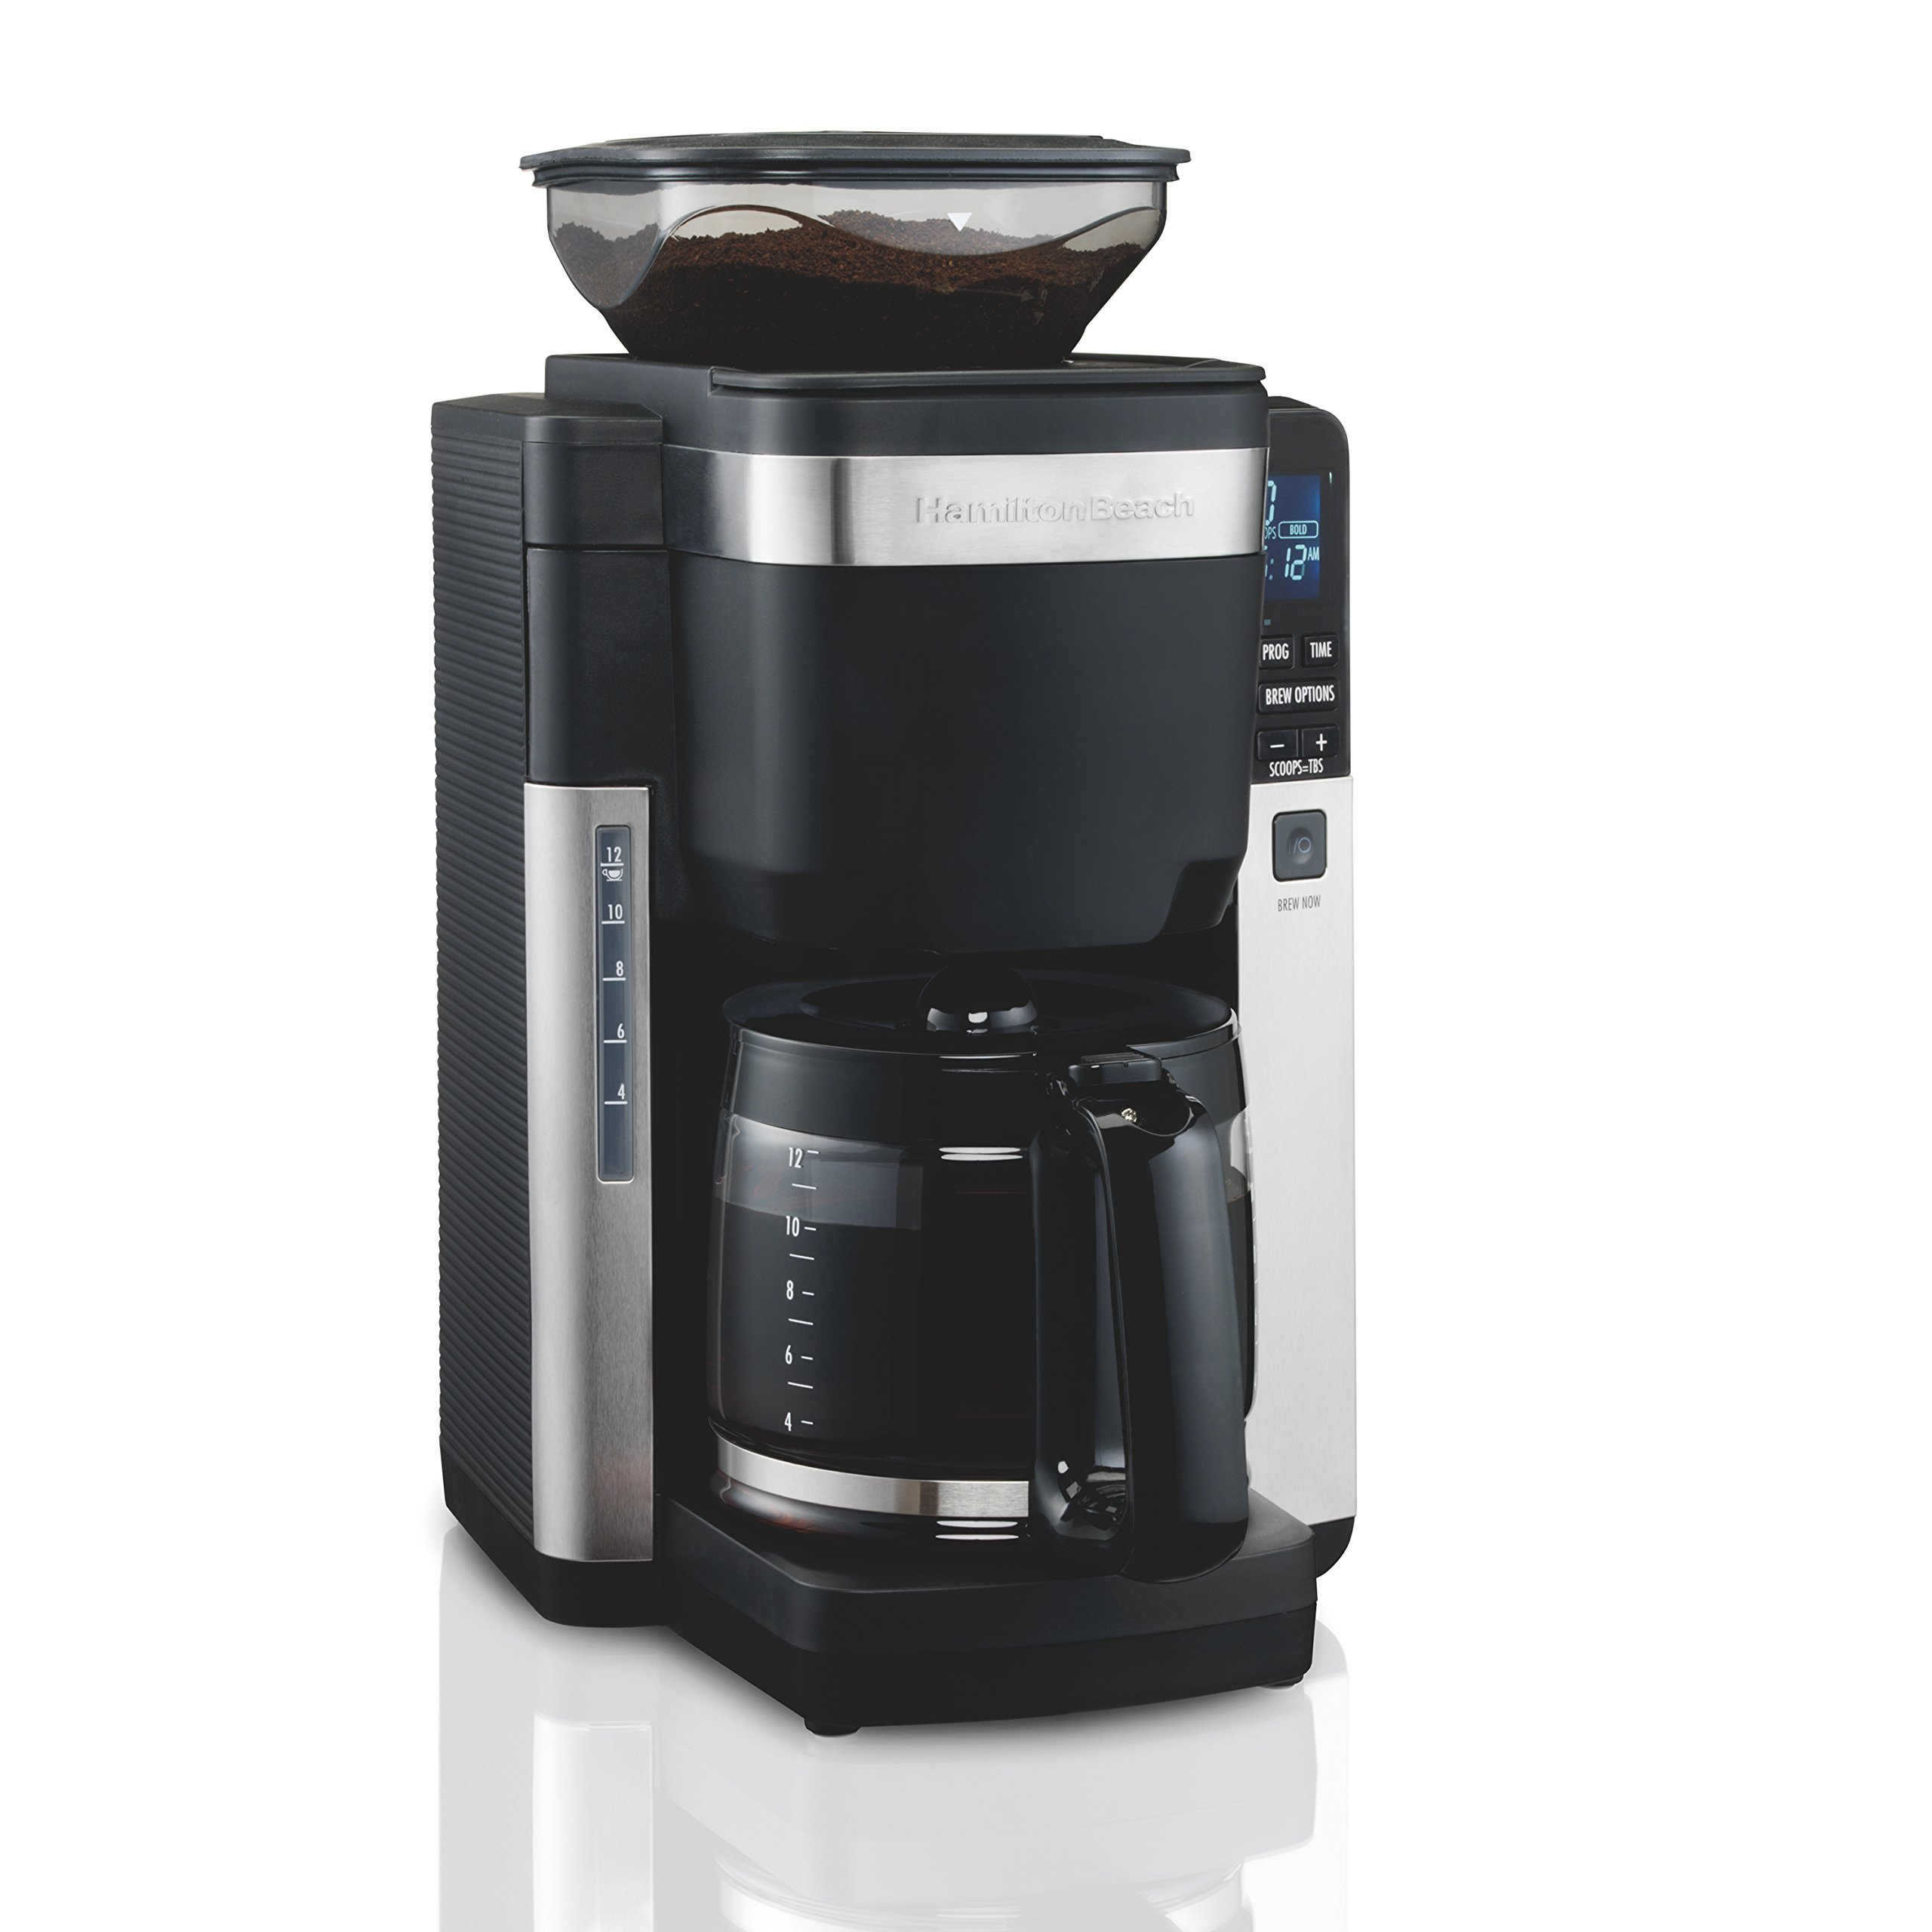 Hamilton Beach 45400 Coffee Maker, Automatic Grounds Dispensing for Pre-Ground Coffee, Black